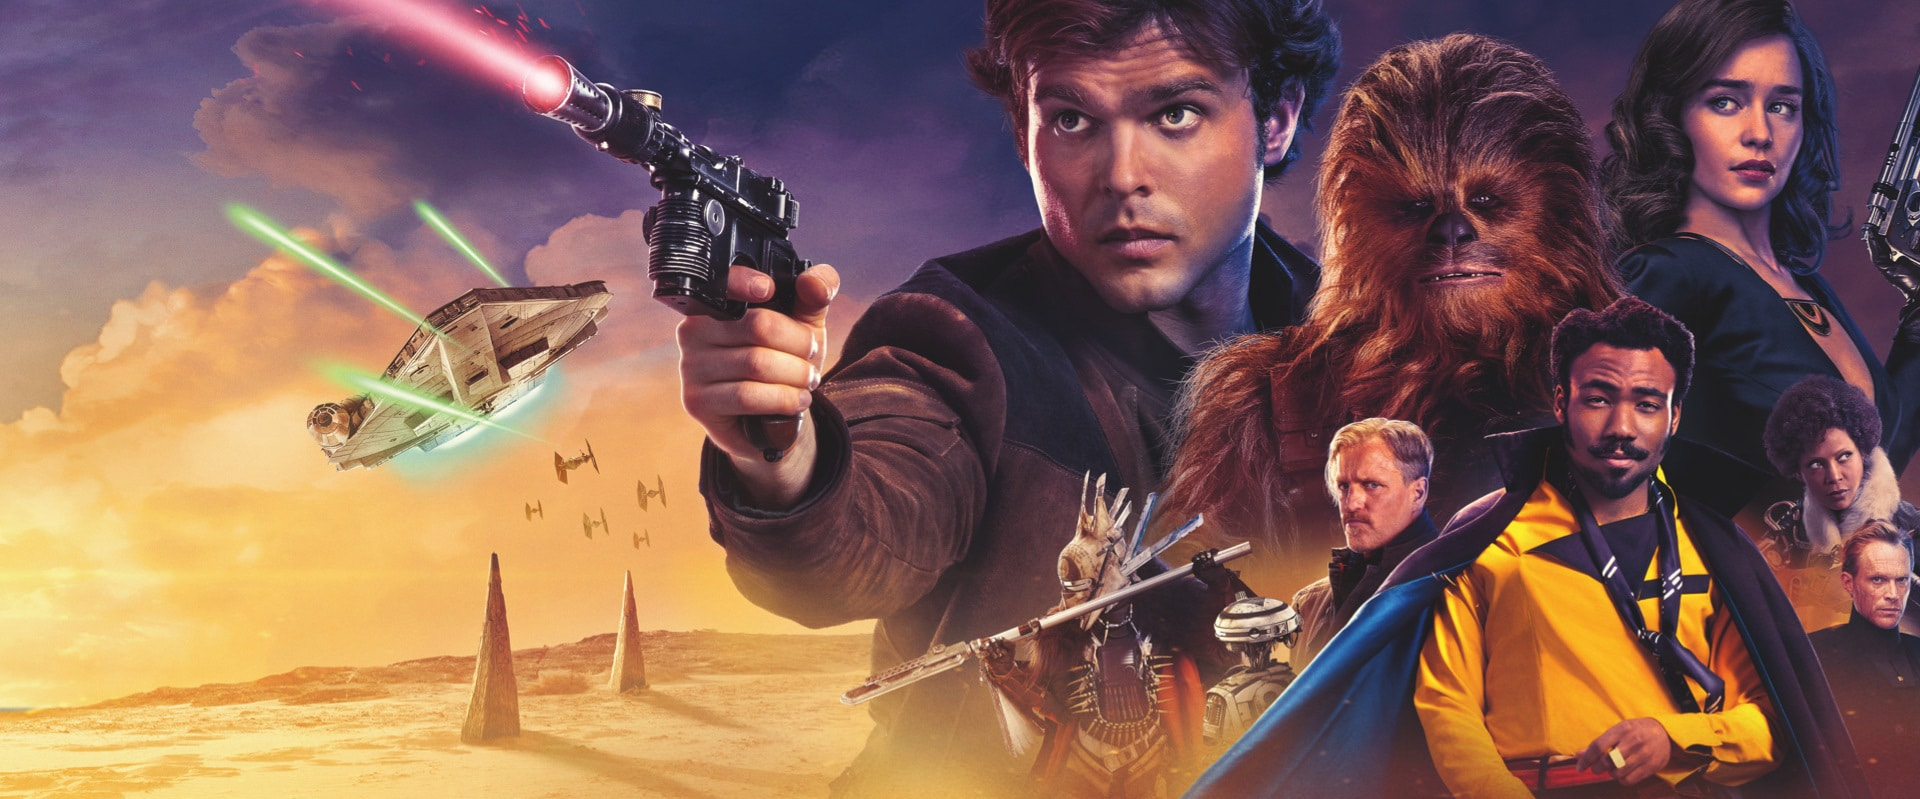 Han Solo: Una Historia De Star Wars | Movie Trailer